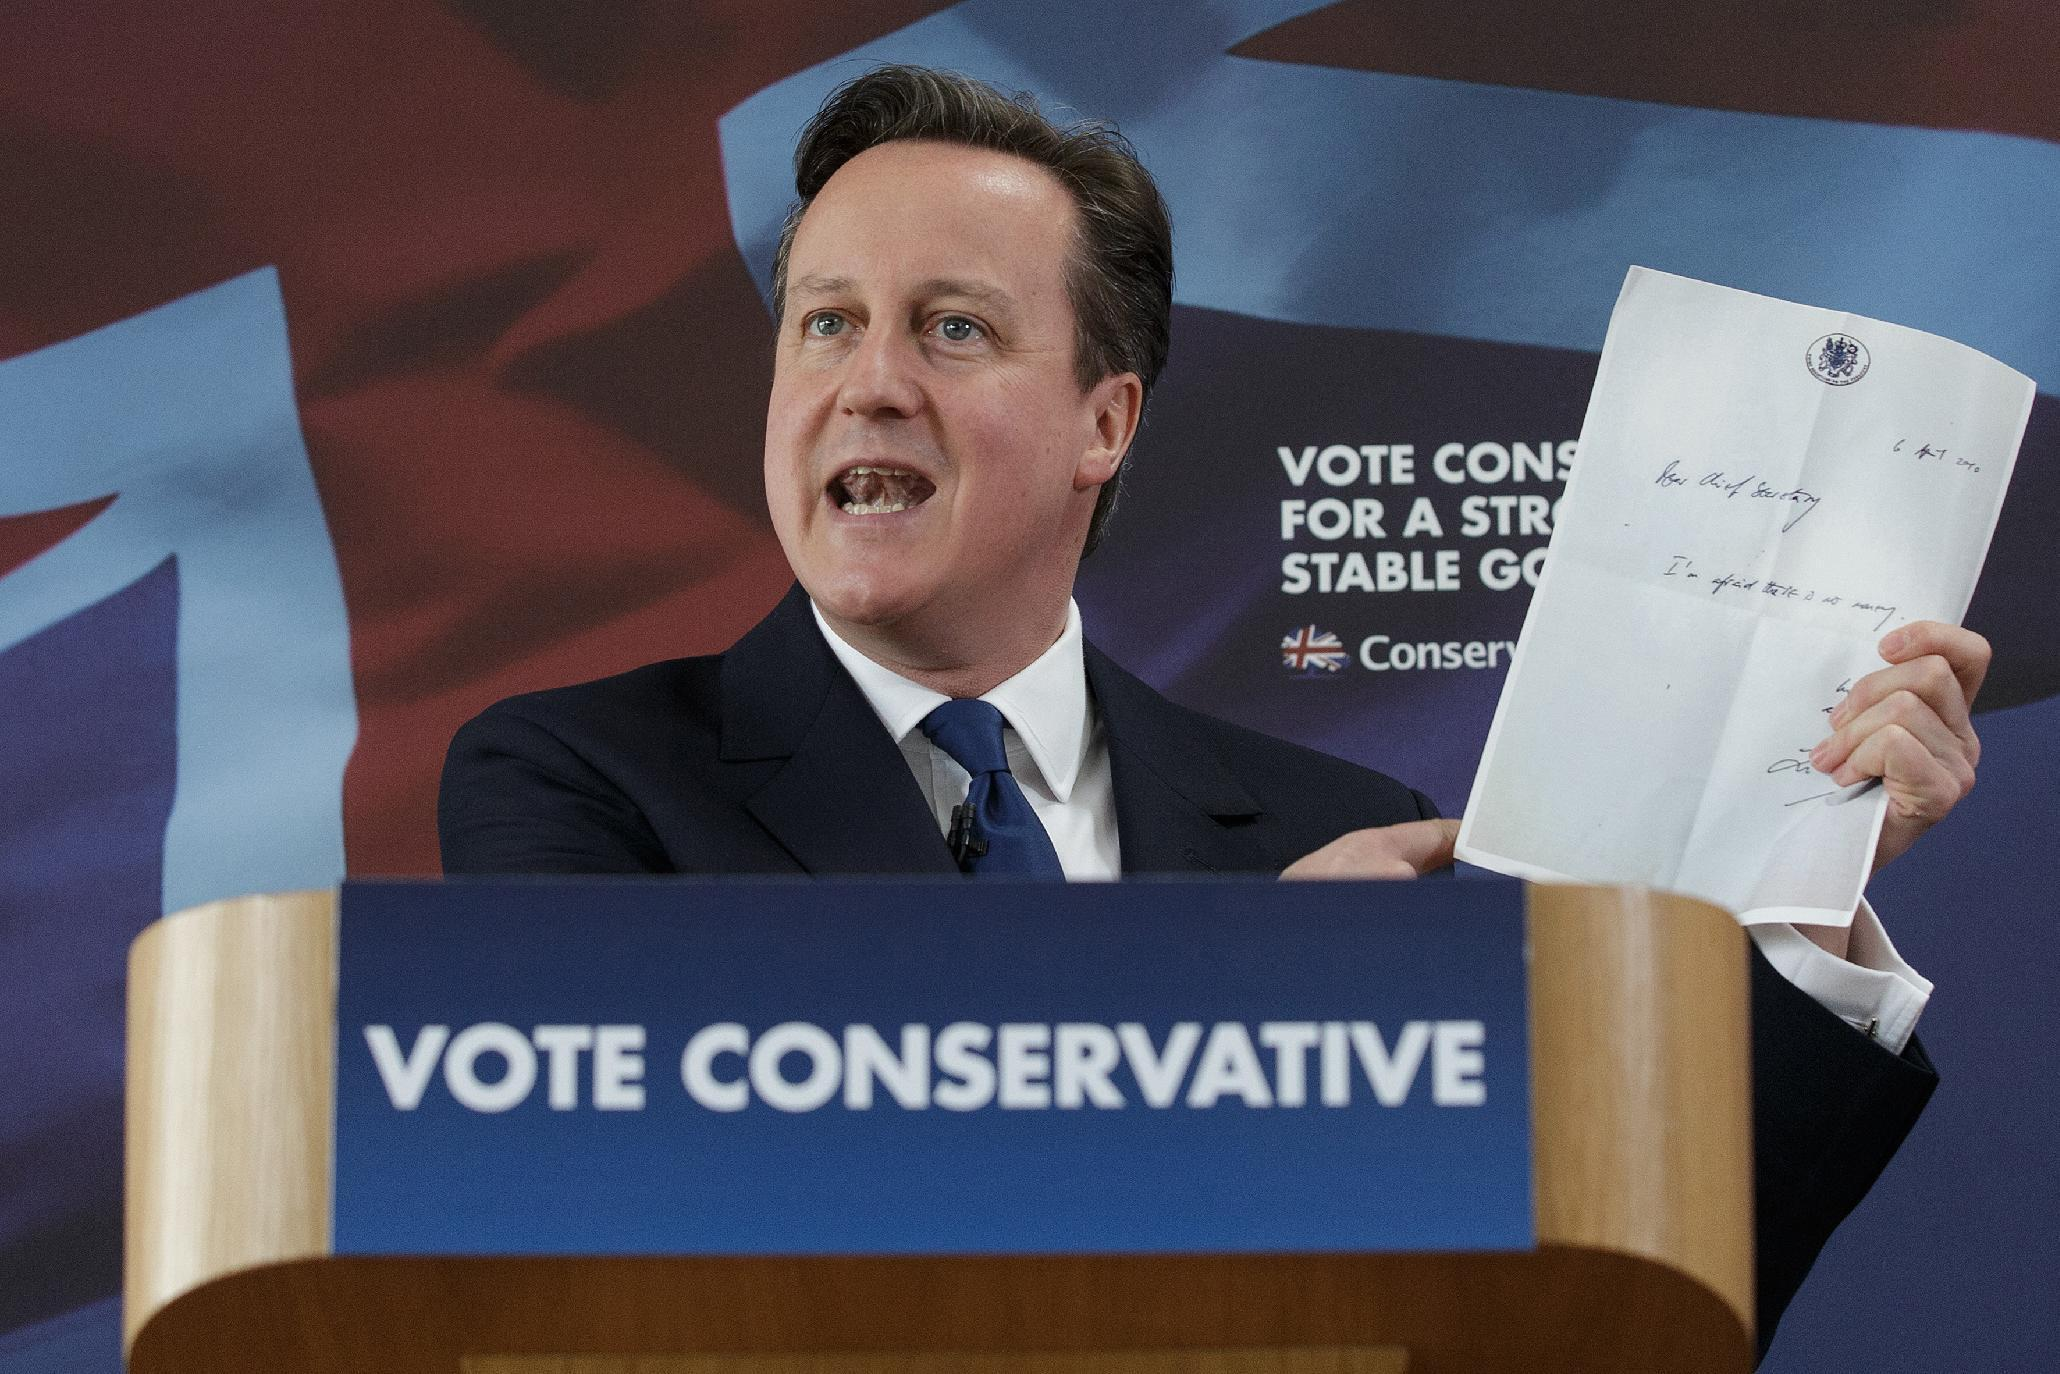 British leaders in final push before May 7 election